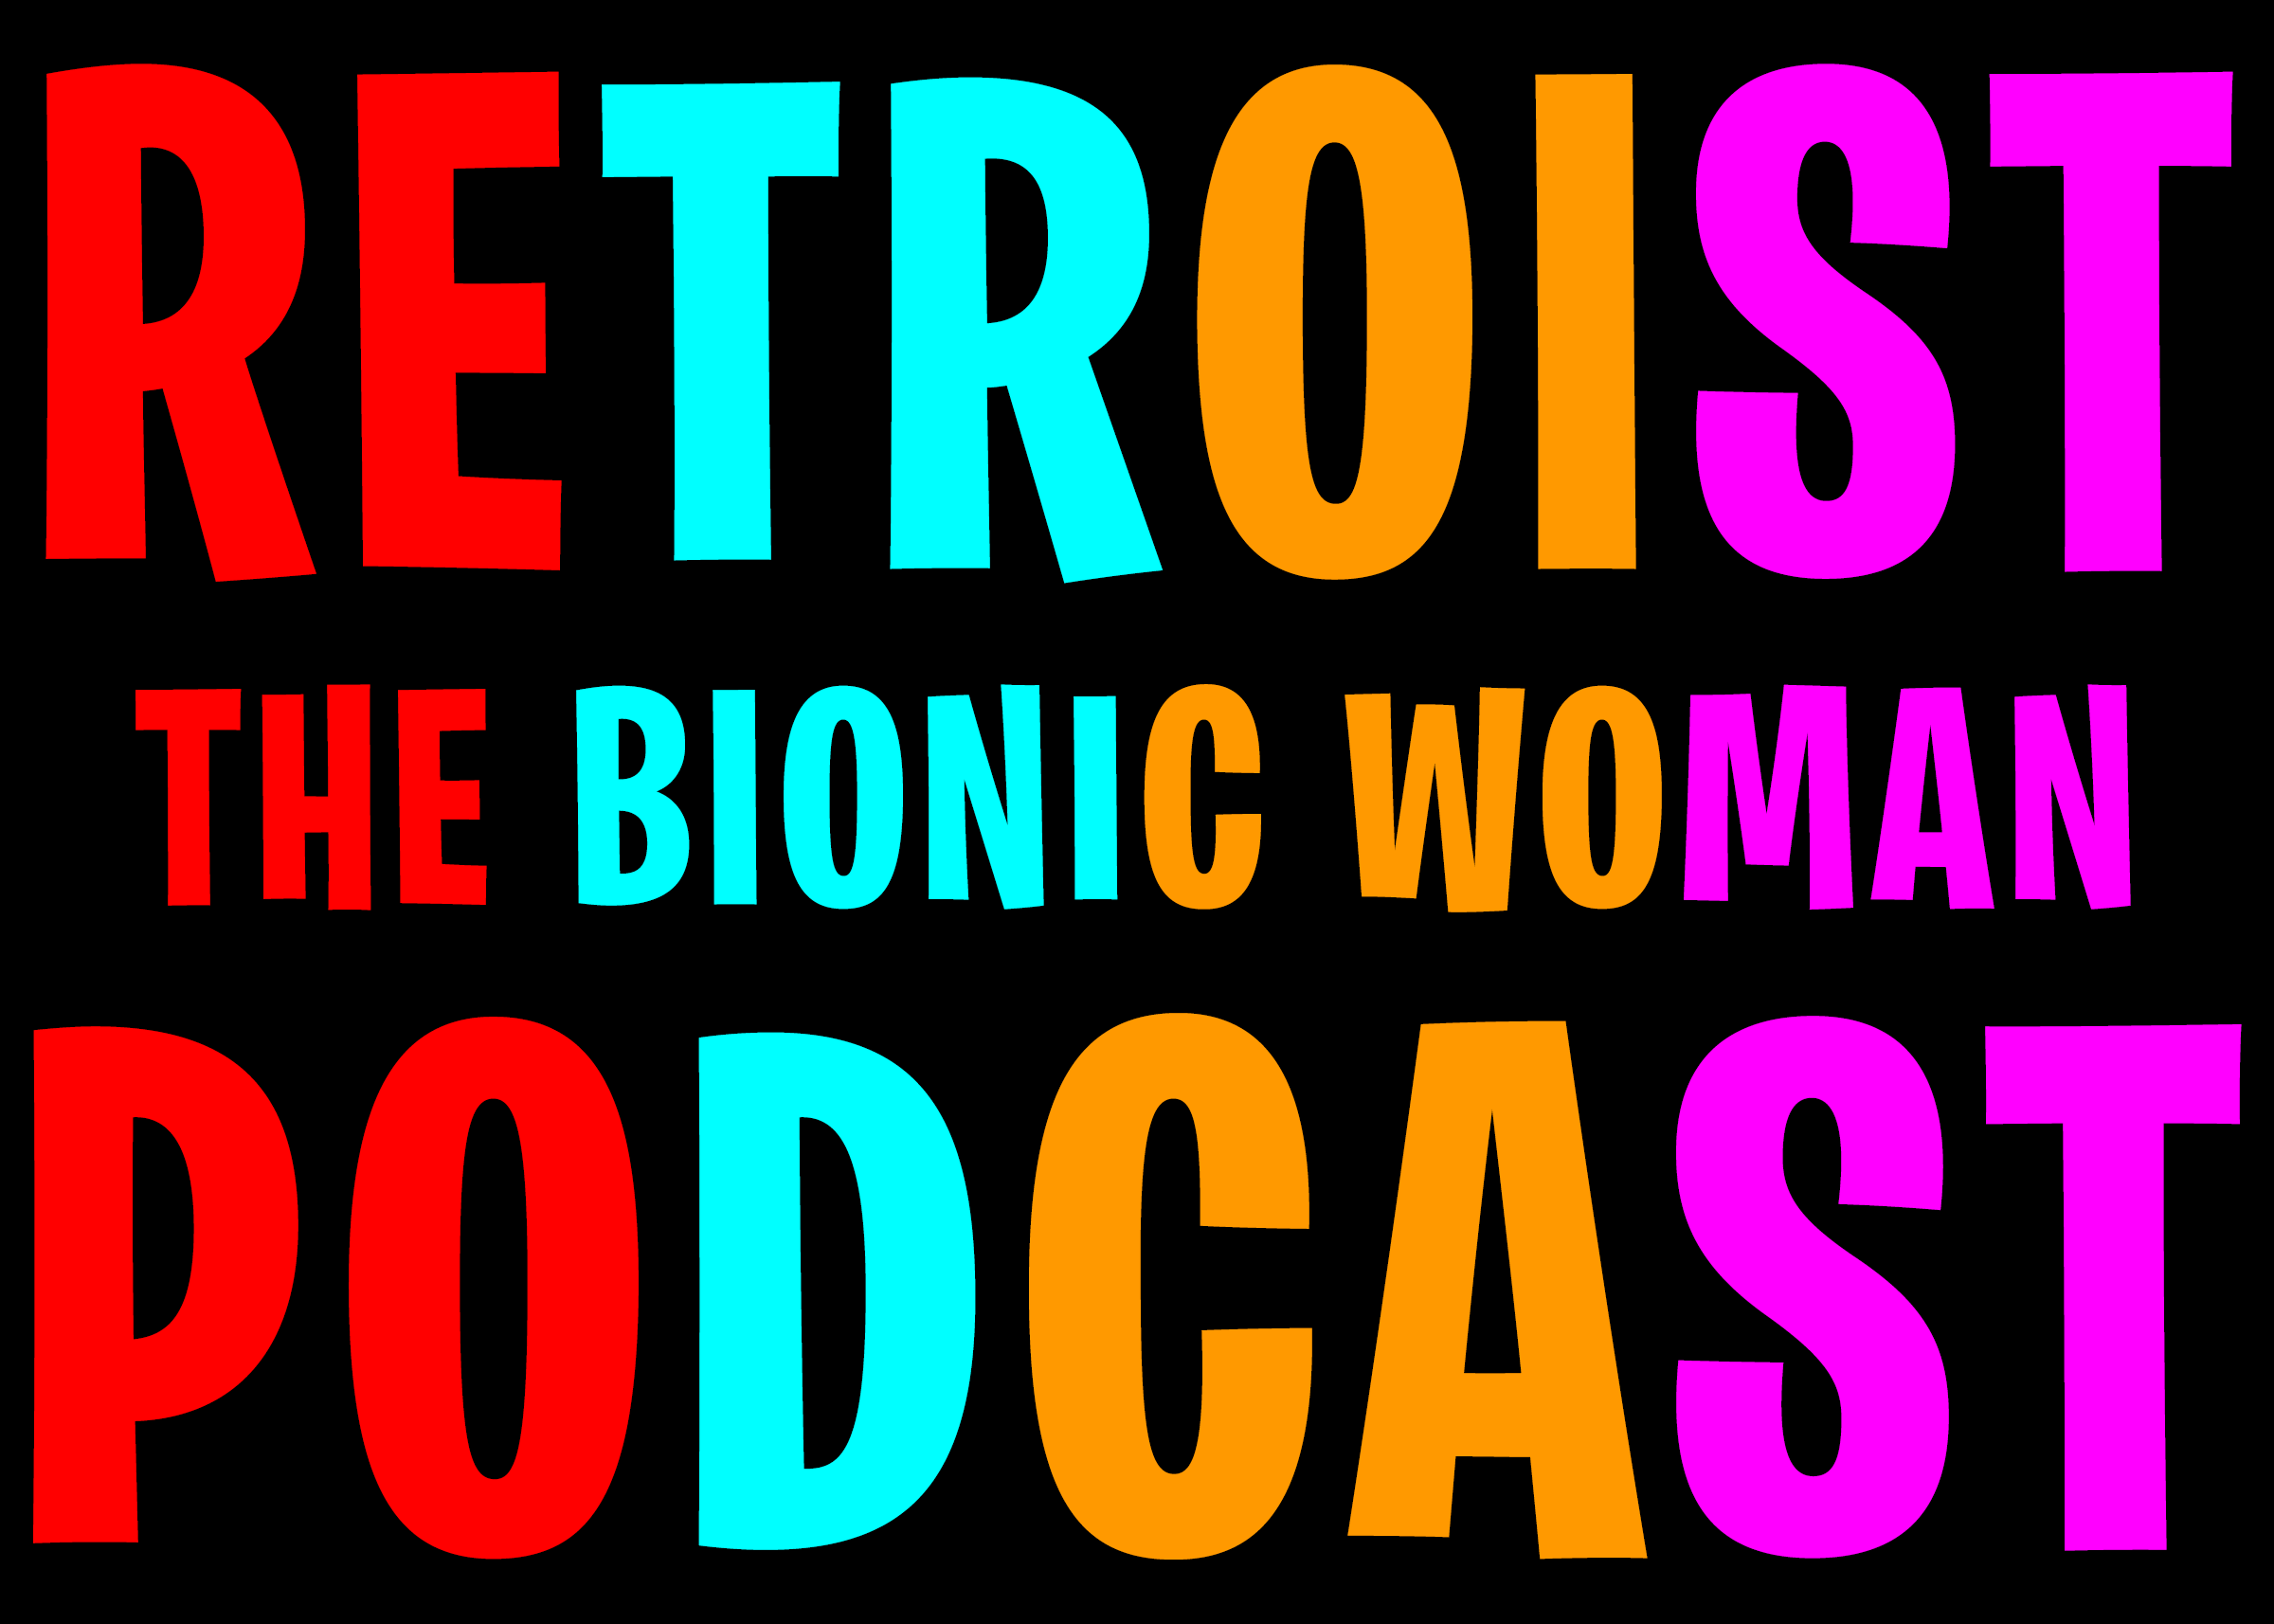 Retroist Bionic Woman Podcast